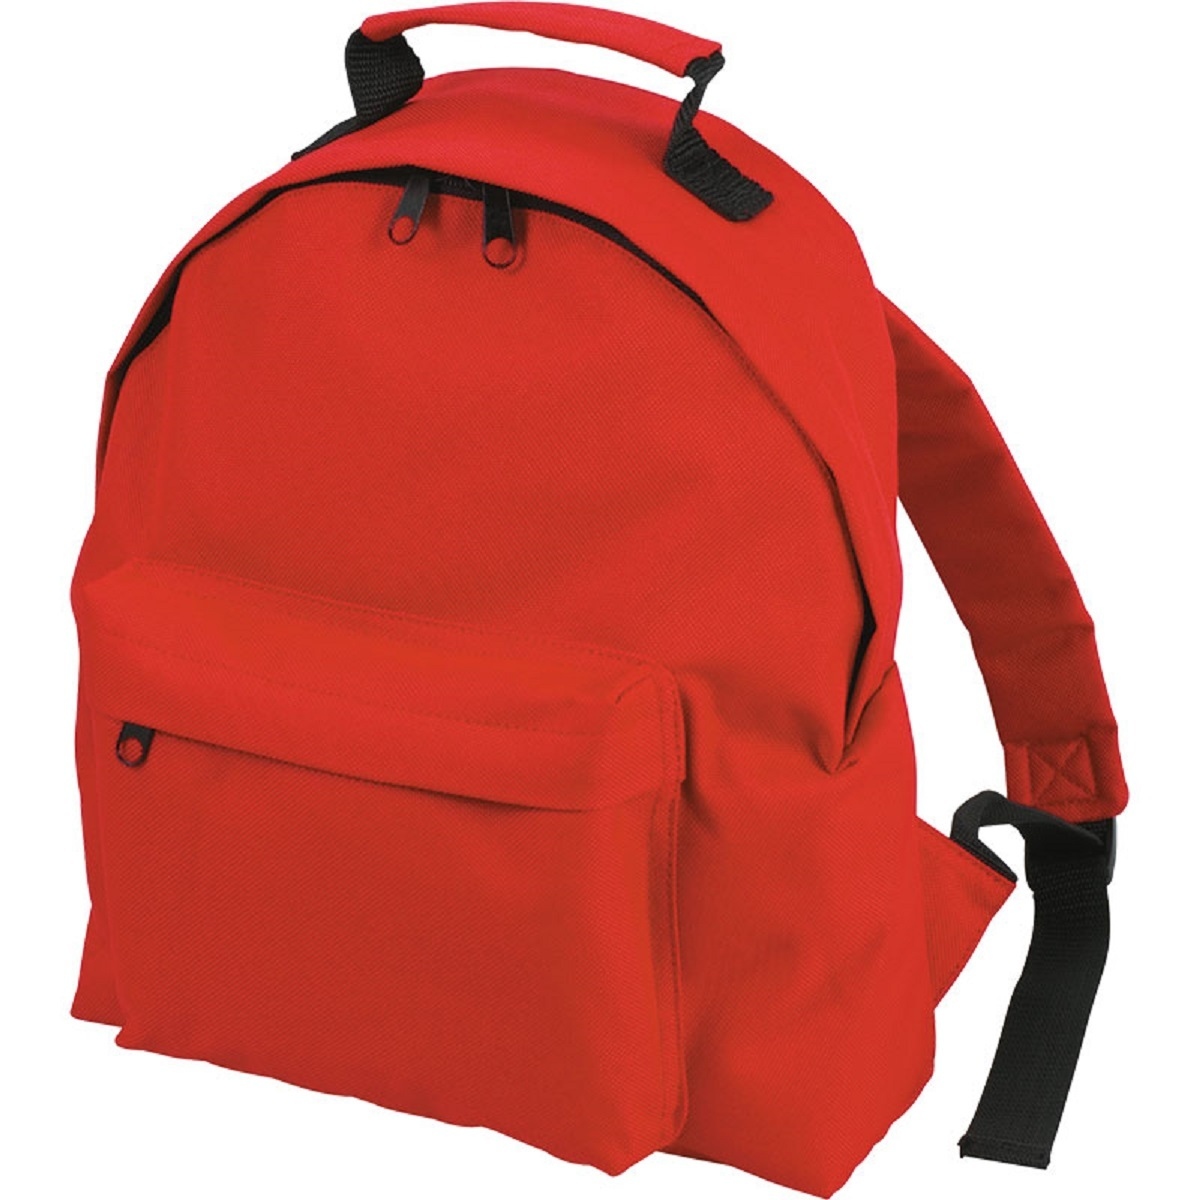 Sac à dos enfant - KIDS Backpack 1802722 - rouge